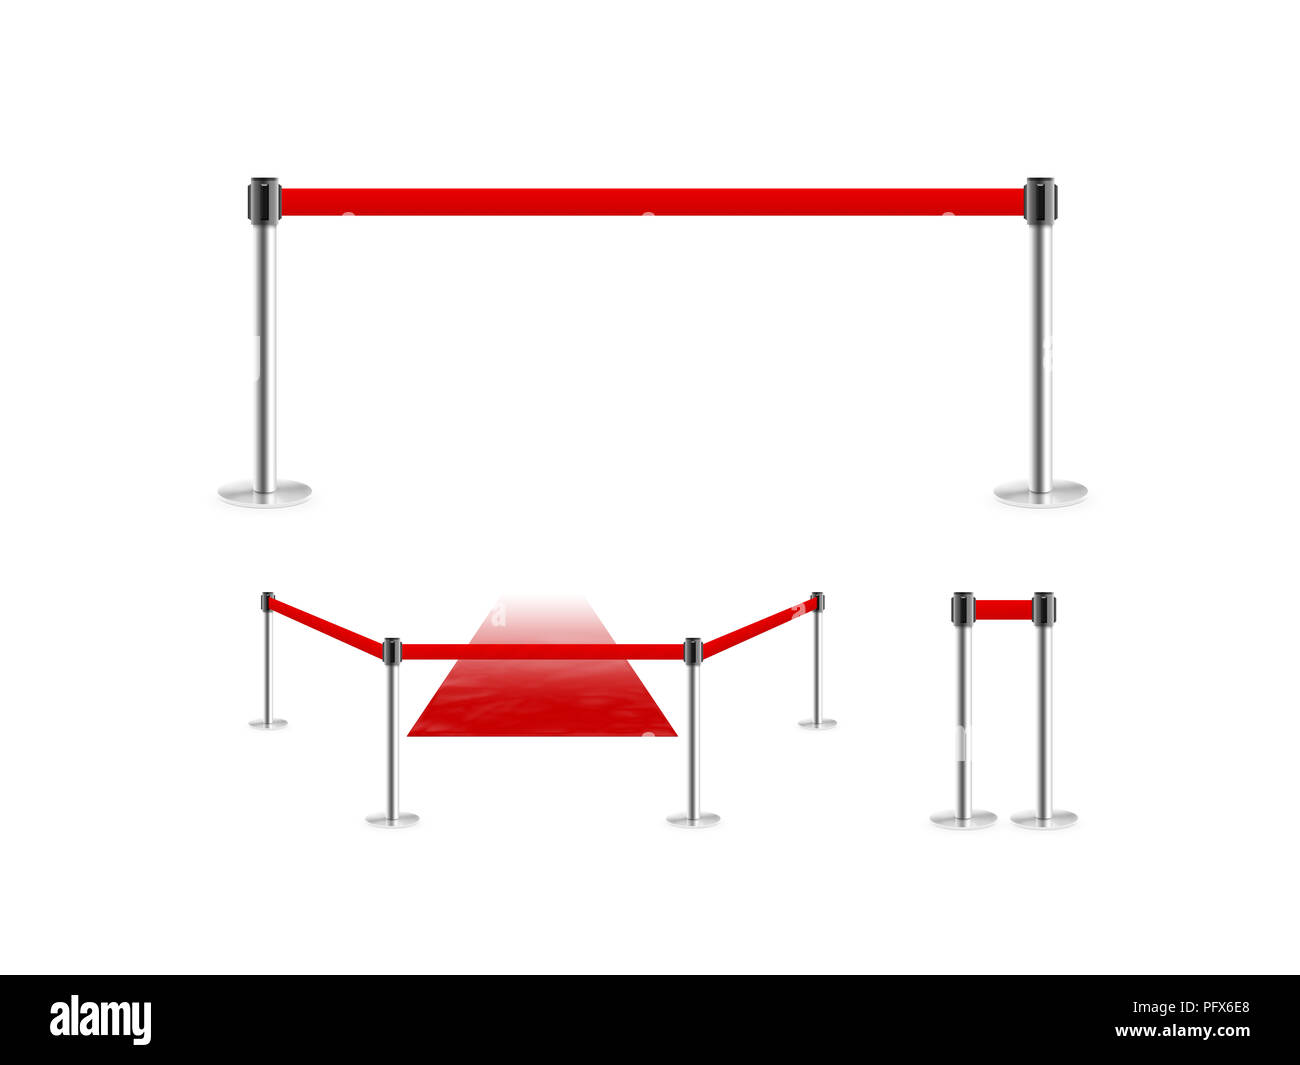 Mobile fence barrier with red belt and velvet carpet stand isolated on white. Fencing barricade on metal chrome pole posts. Portable protective rack w - Stock Image